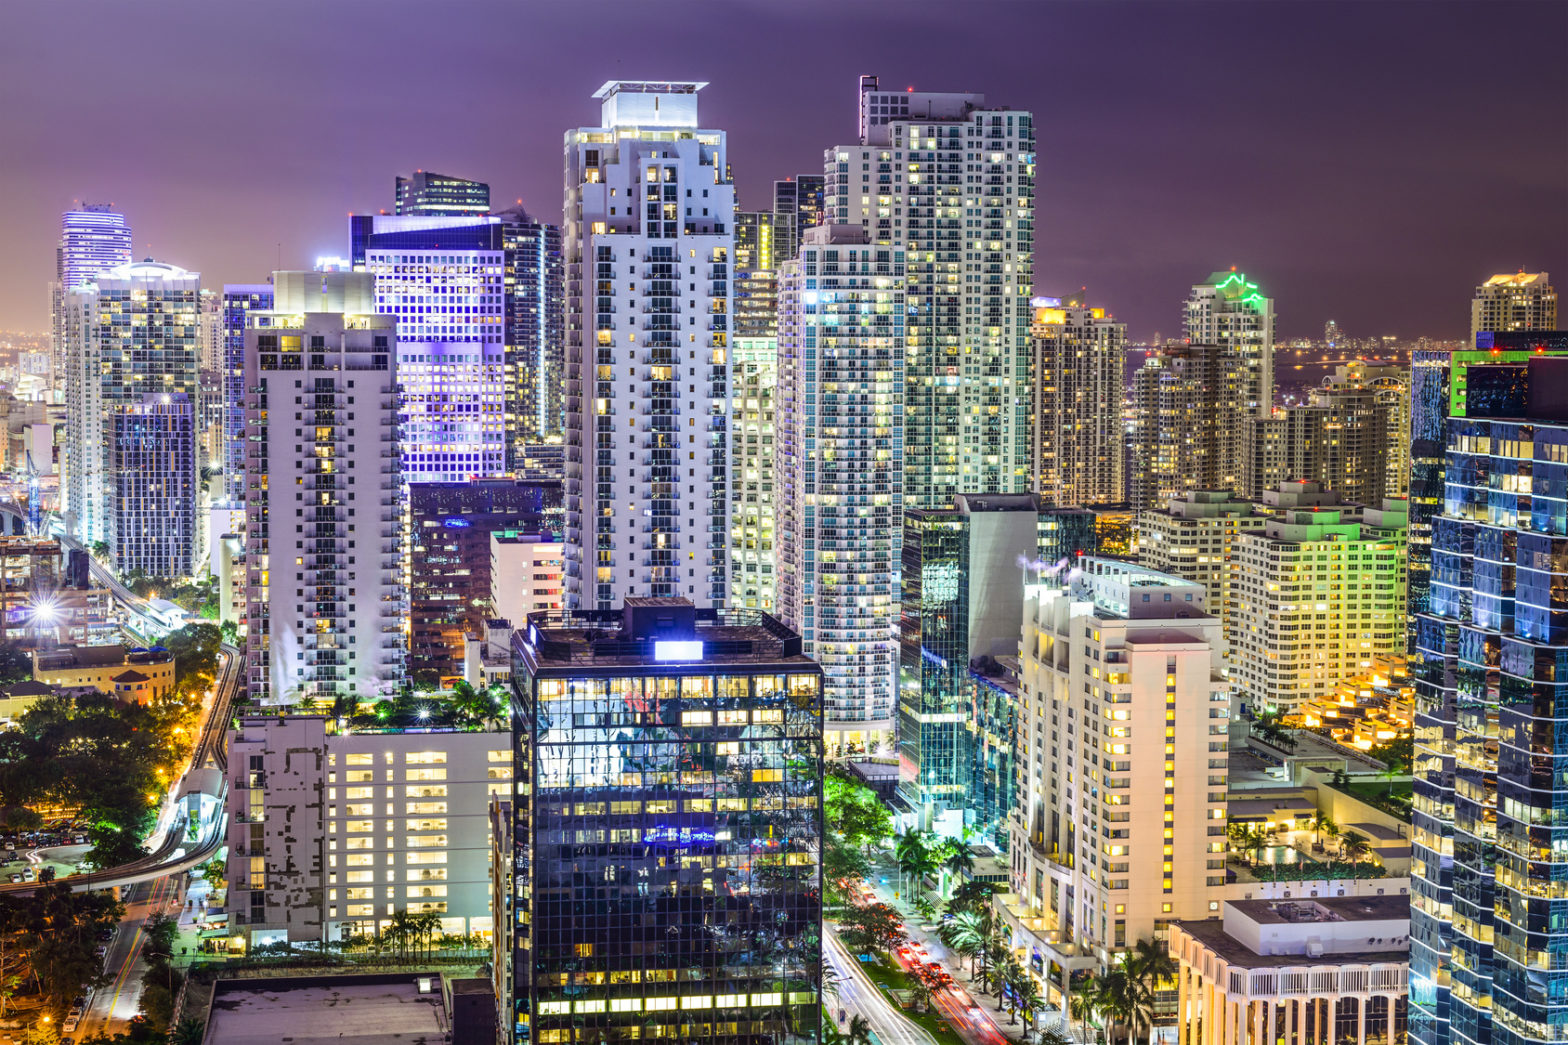 Miami's cultural diversity contributes to its real estate development